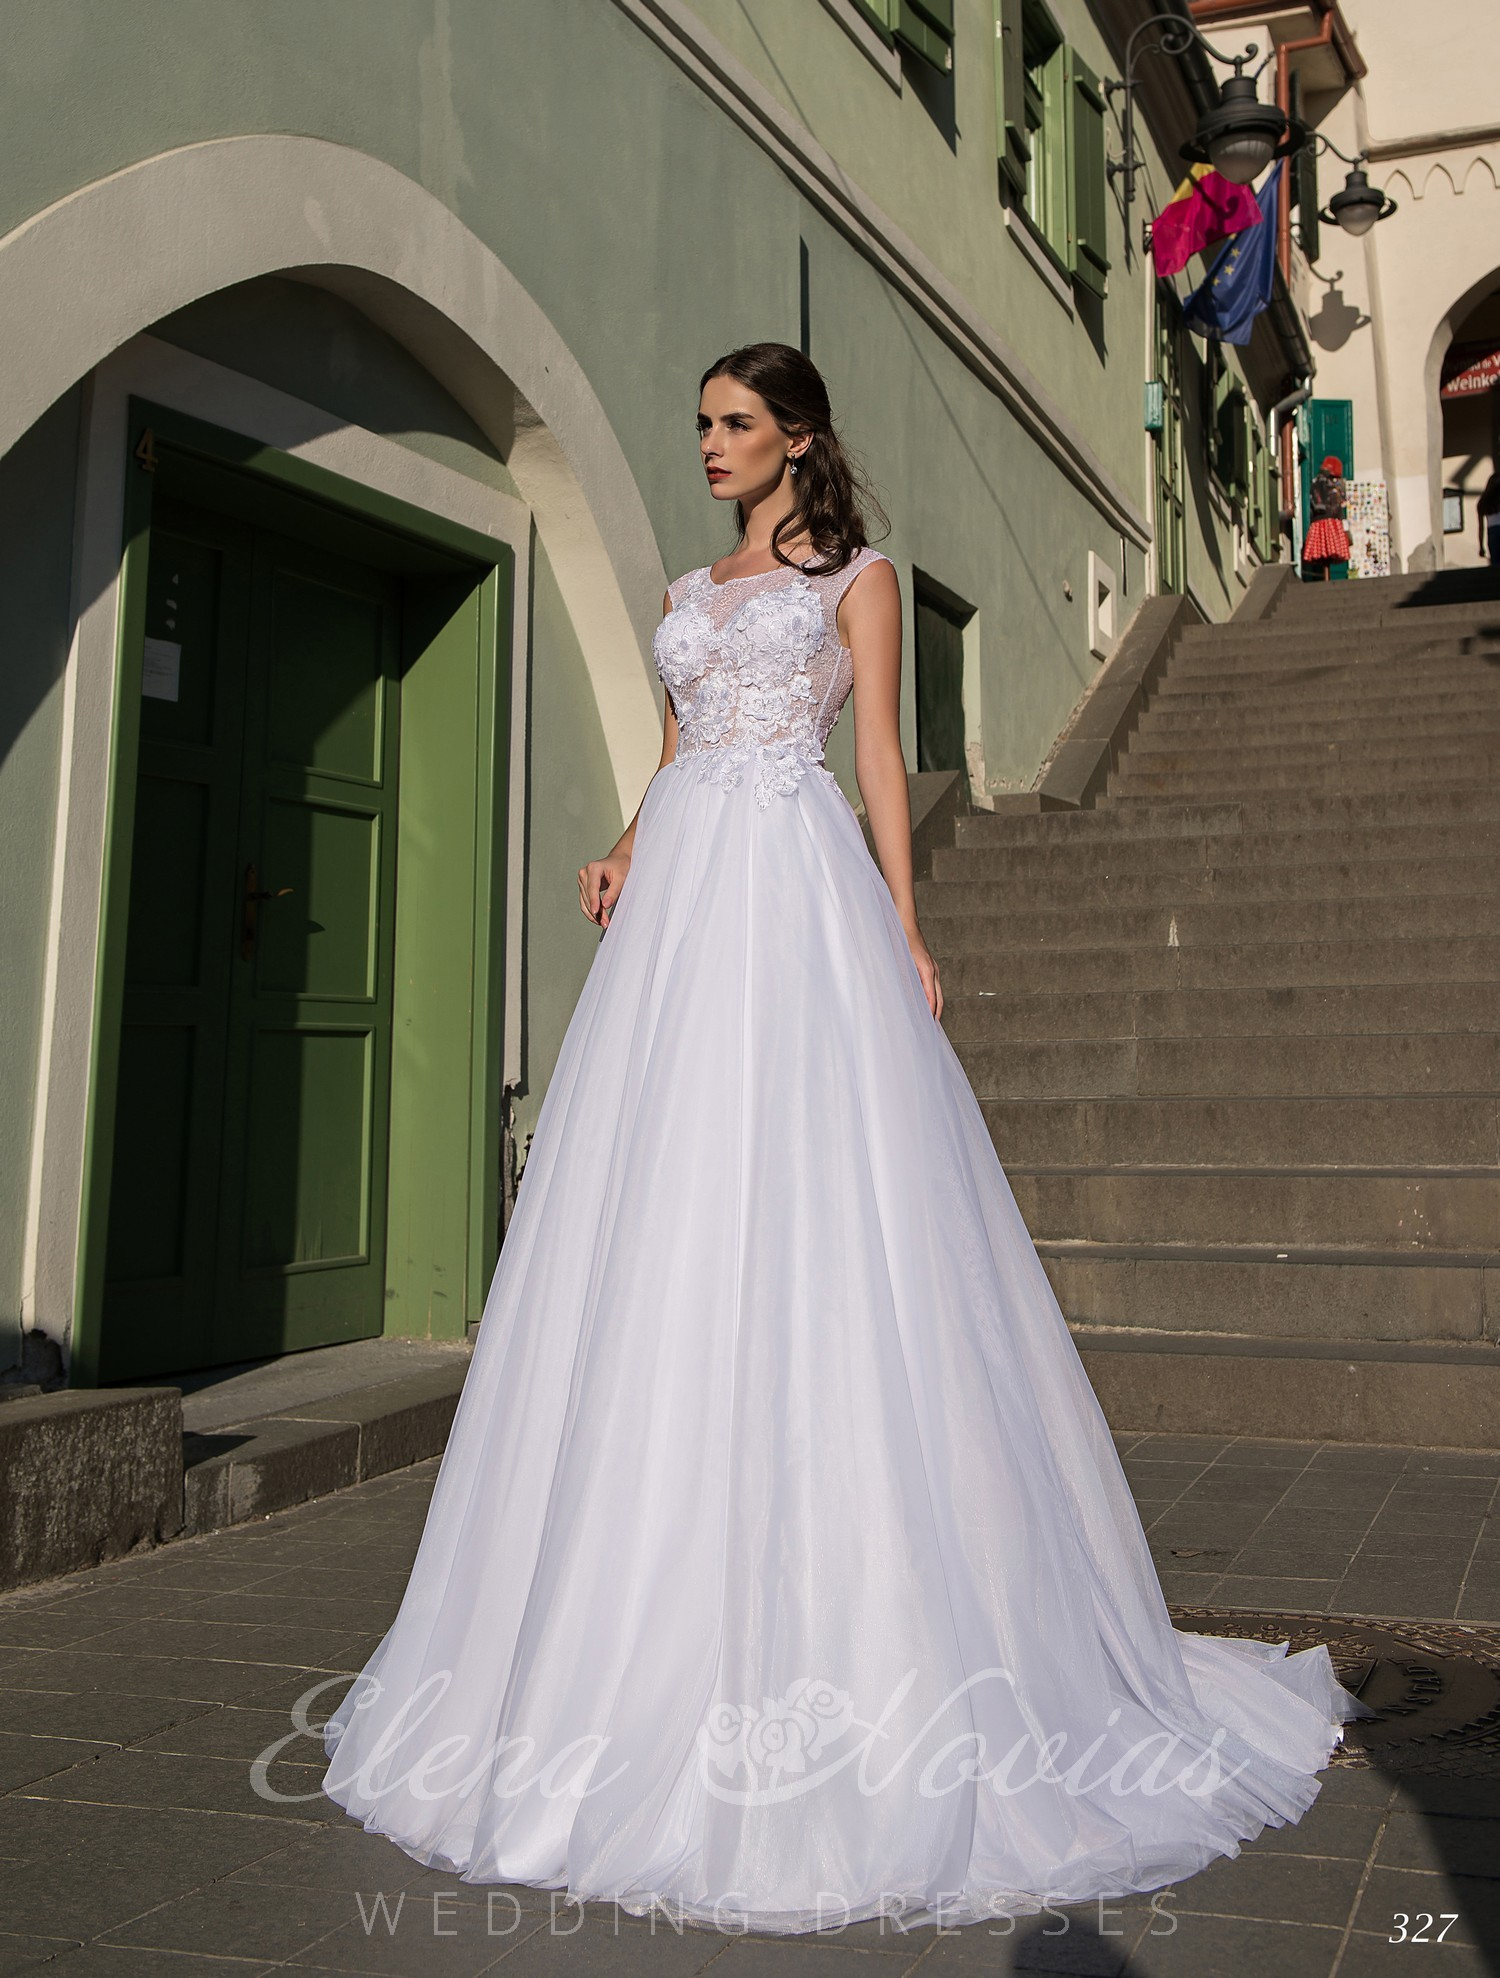 Wedding dress wholesale 327